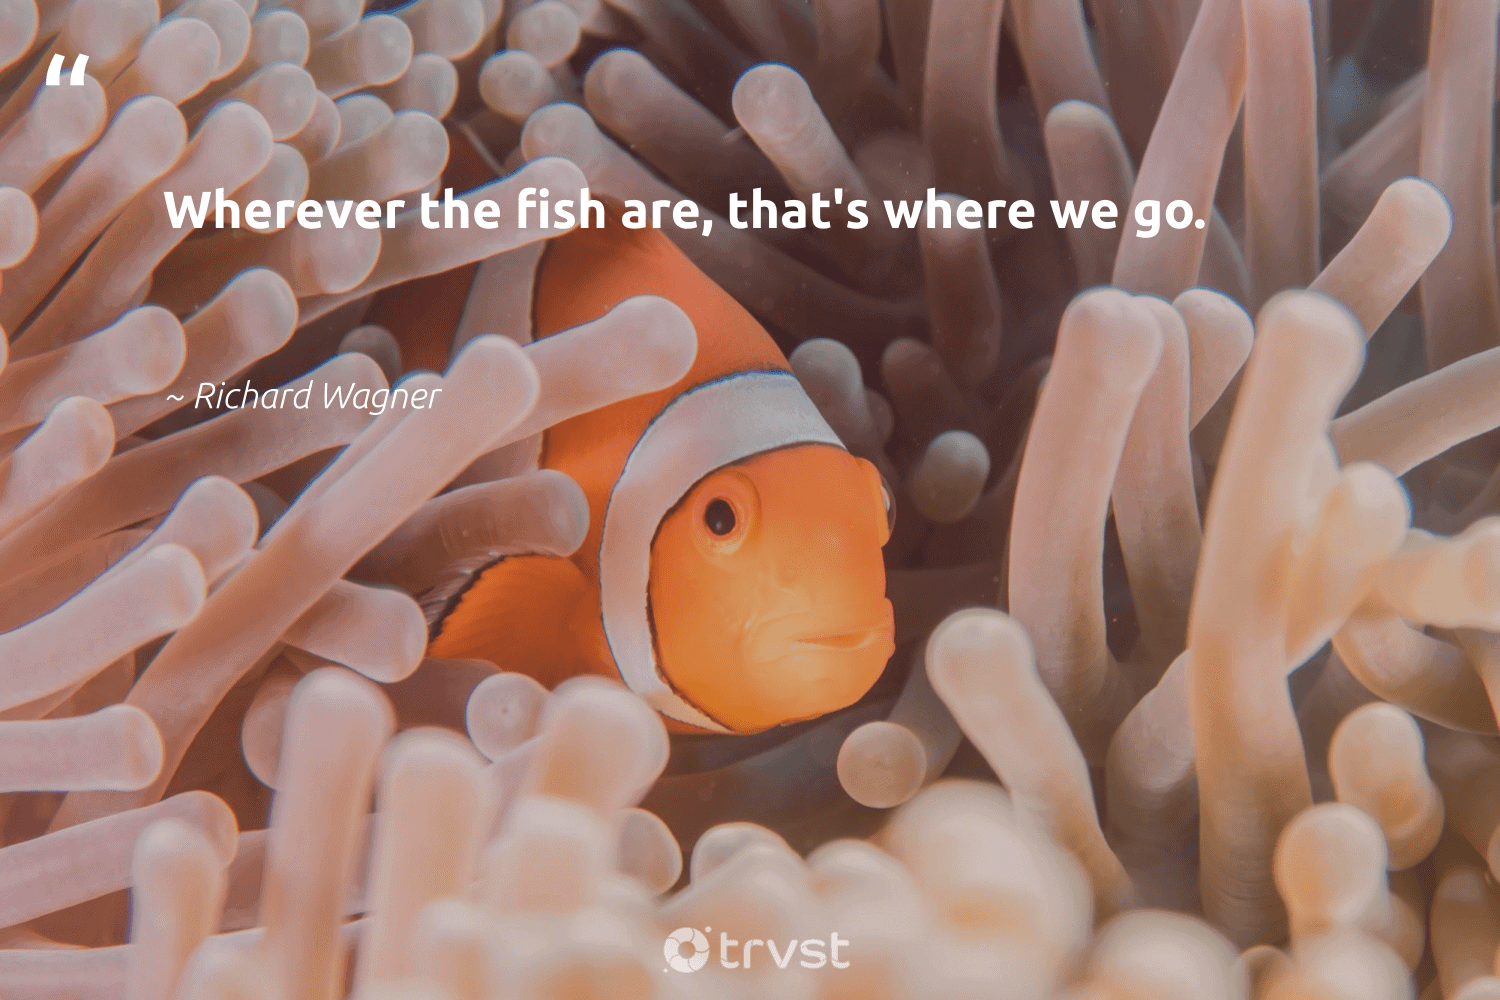 """""""Wherever the fish are, that's where we go.""""  - Richard Wagner #trvst #quotes #fish #intheocean #beinspired #marinelife #impact #healthyocean #takeaction #oceanconservation #thinkgreen #protectnature"""